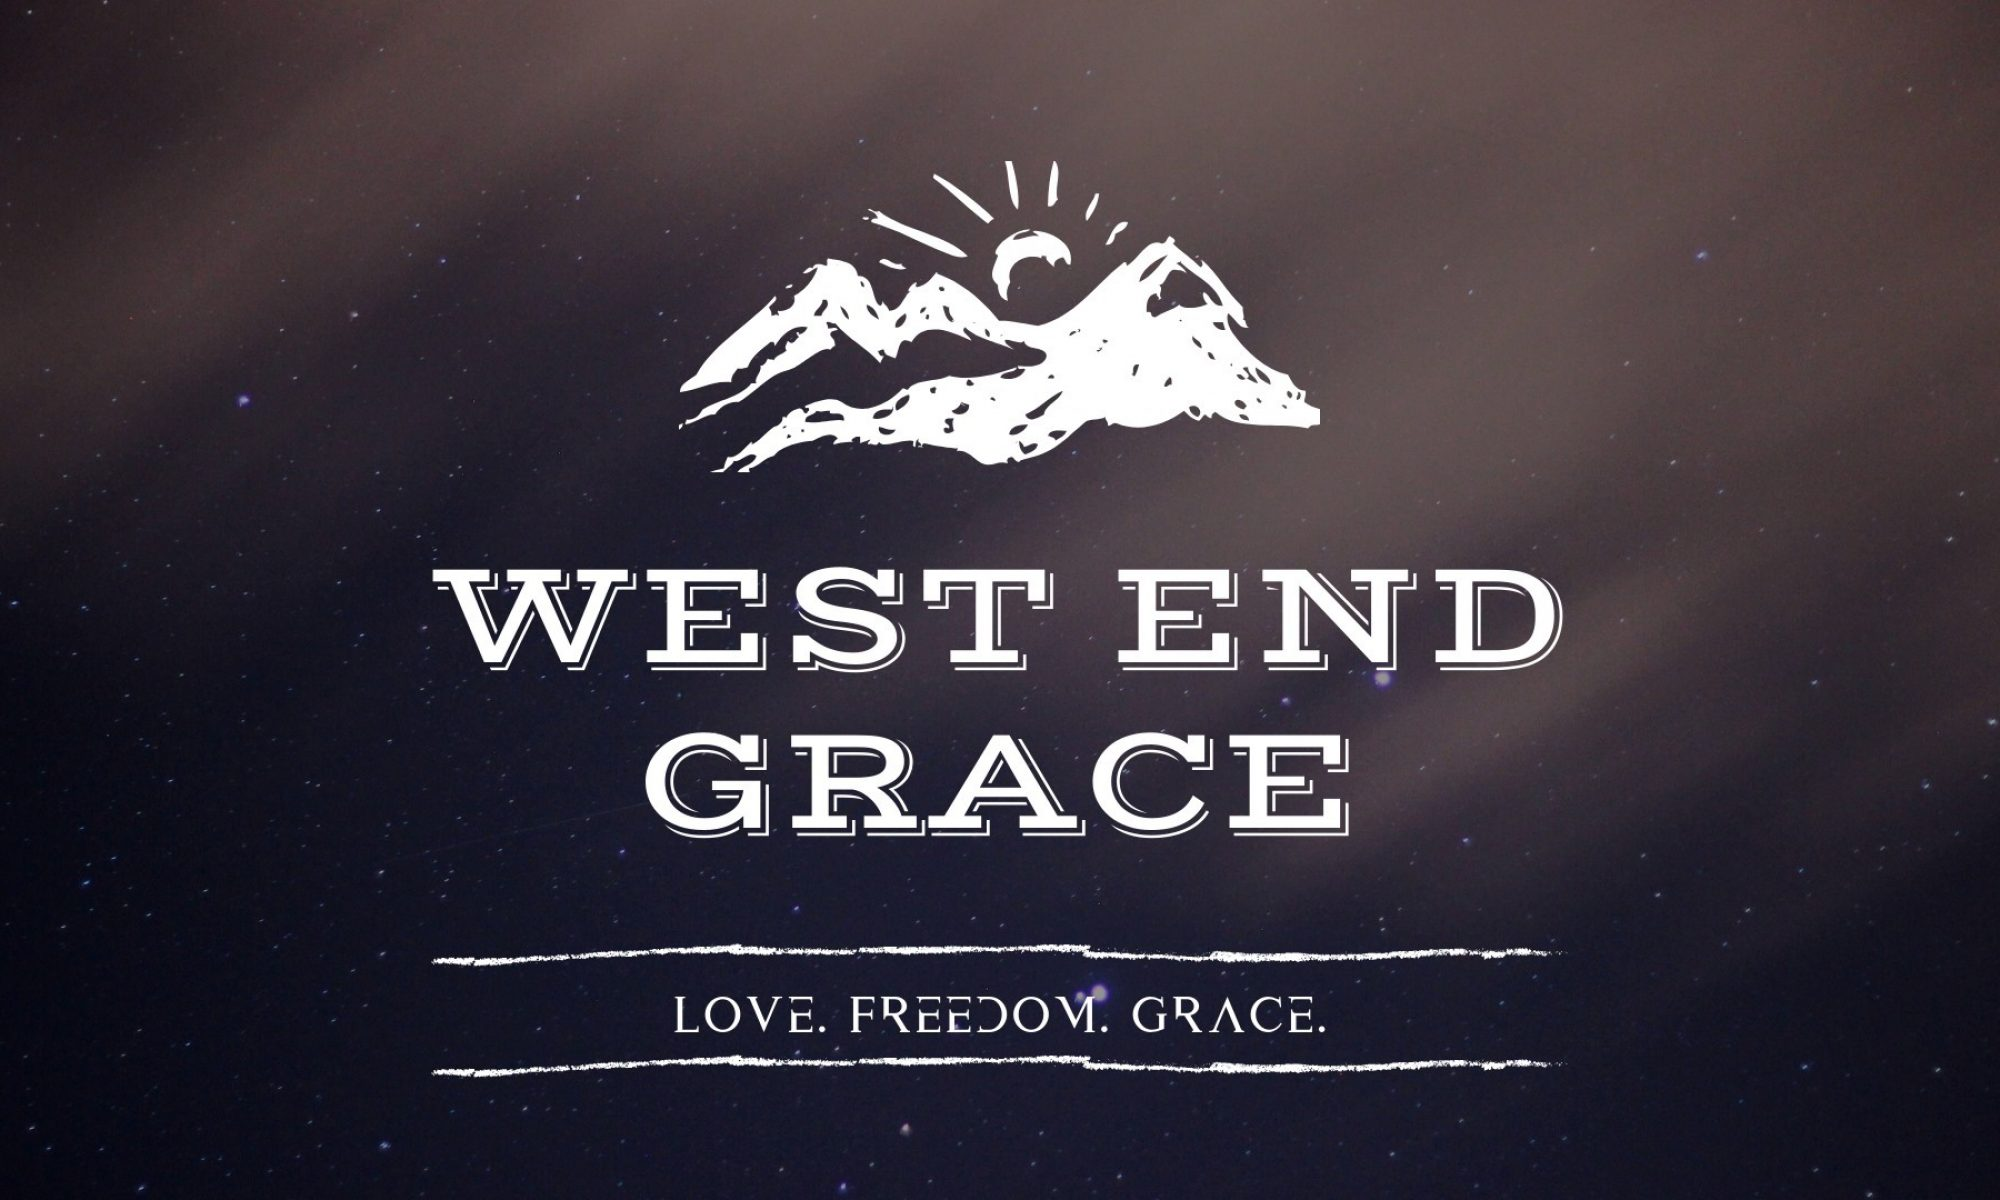 West End Grace